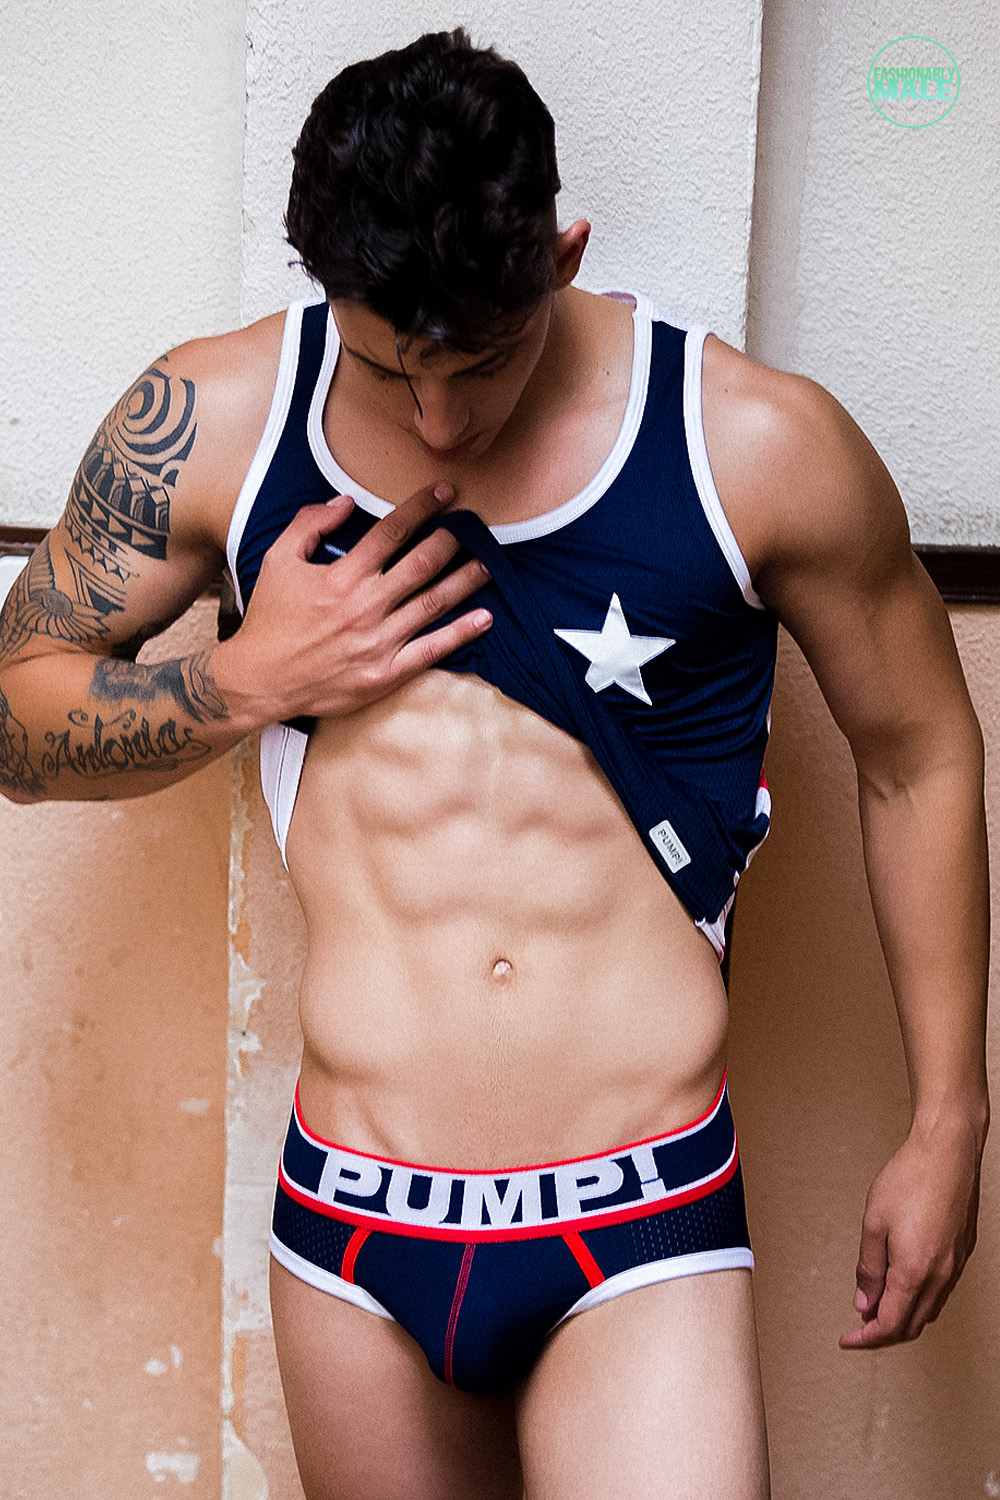 Andoni Jozu by Adrian C. Martin on PUMP6